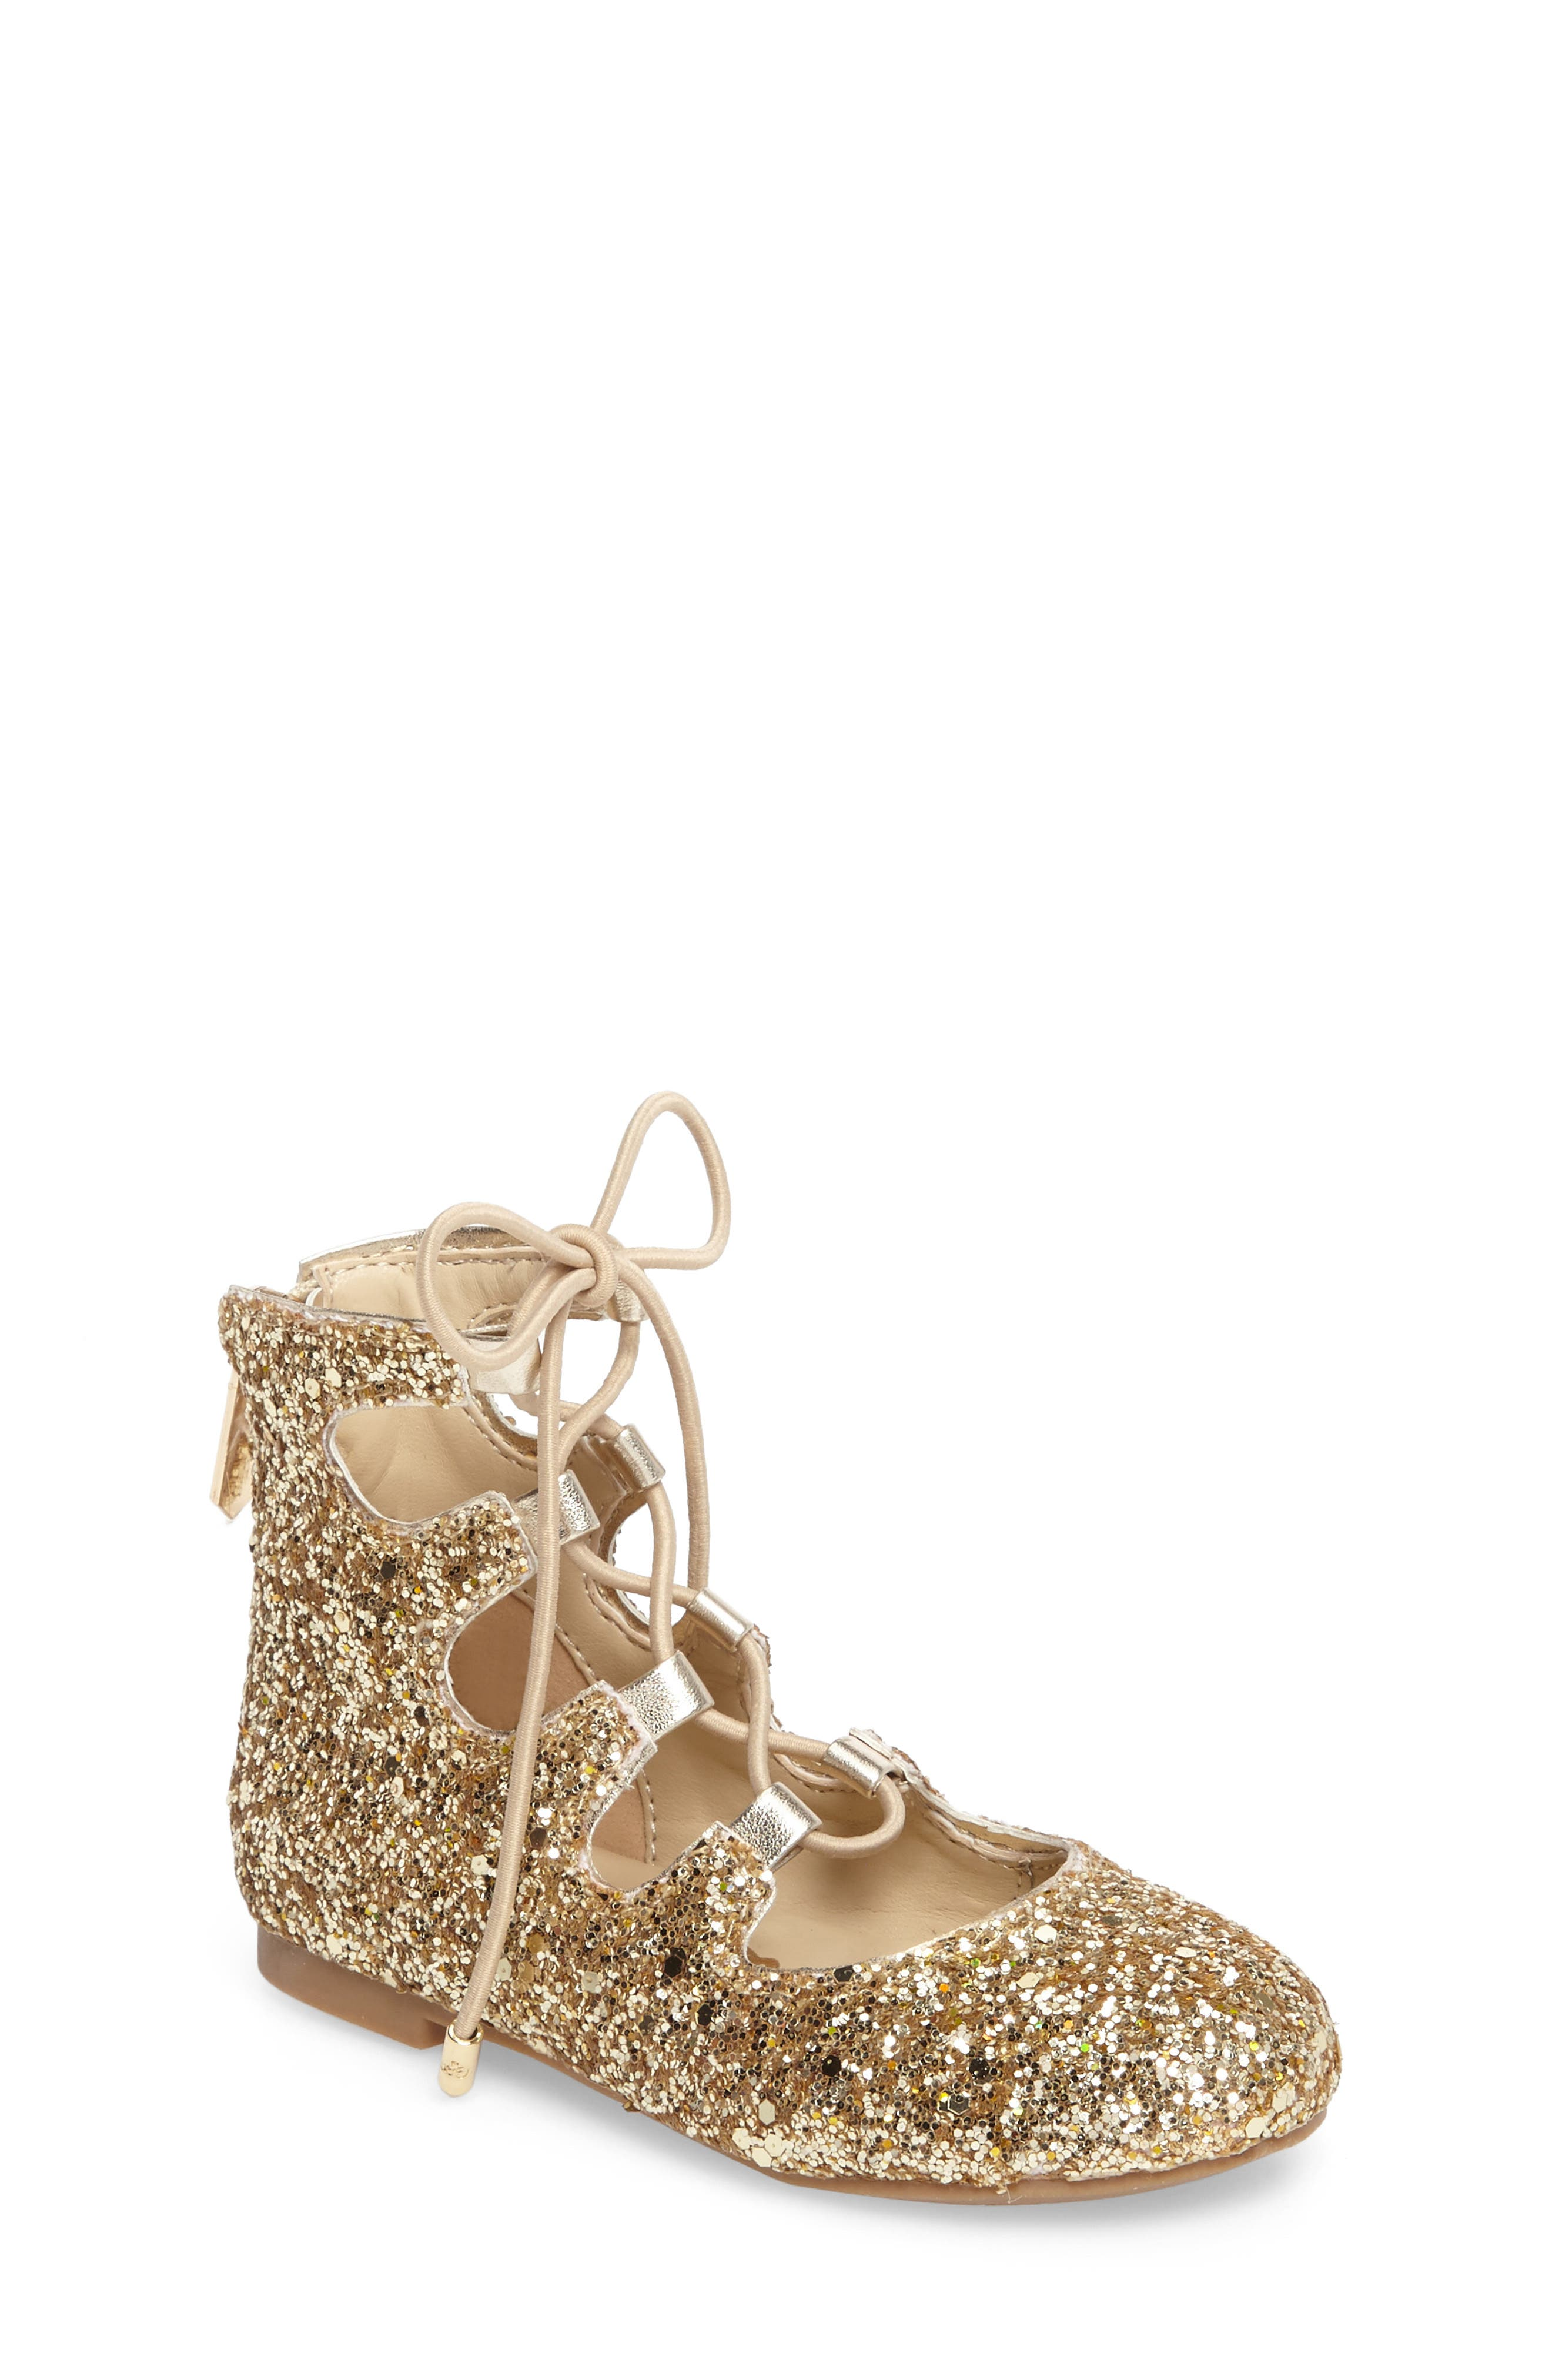 Sam Edelman Felicia Stella Ghillie Glitter Flat (Walker, Toddler, Little Kid & Big Kid)